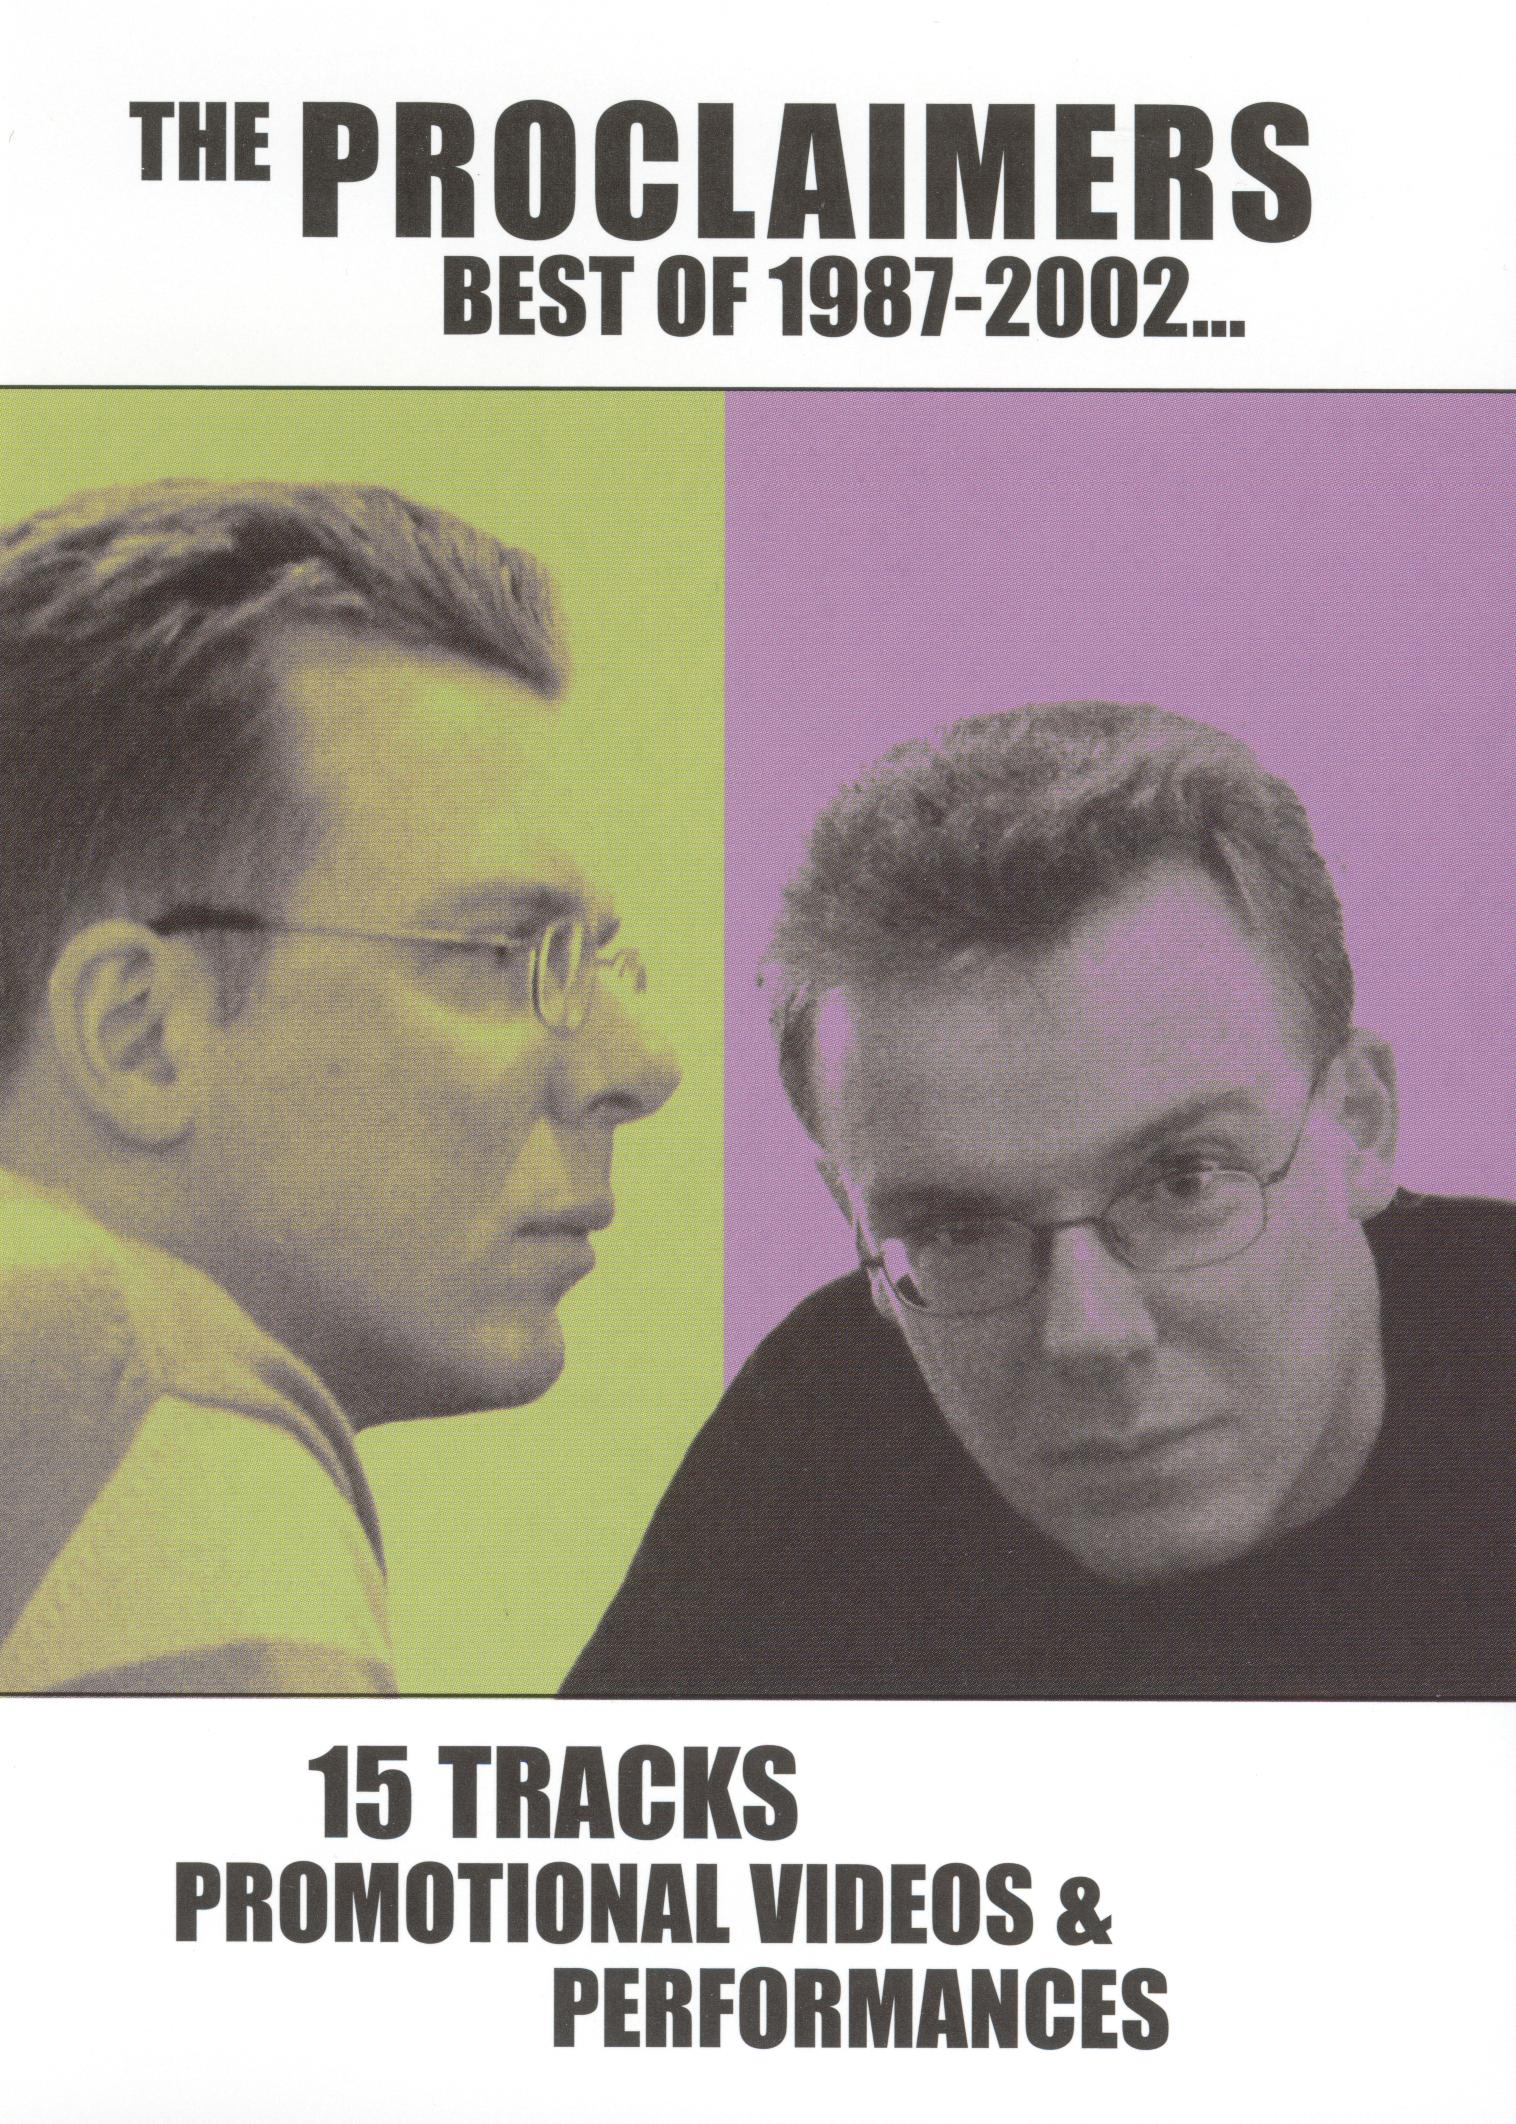 The Proclaimers: The Best of 1987-2002...